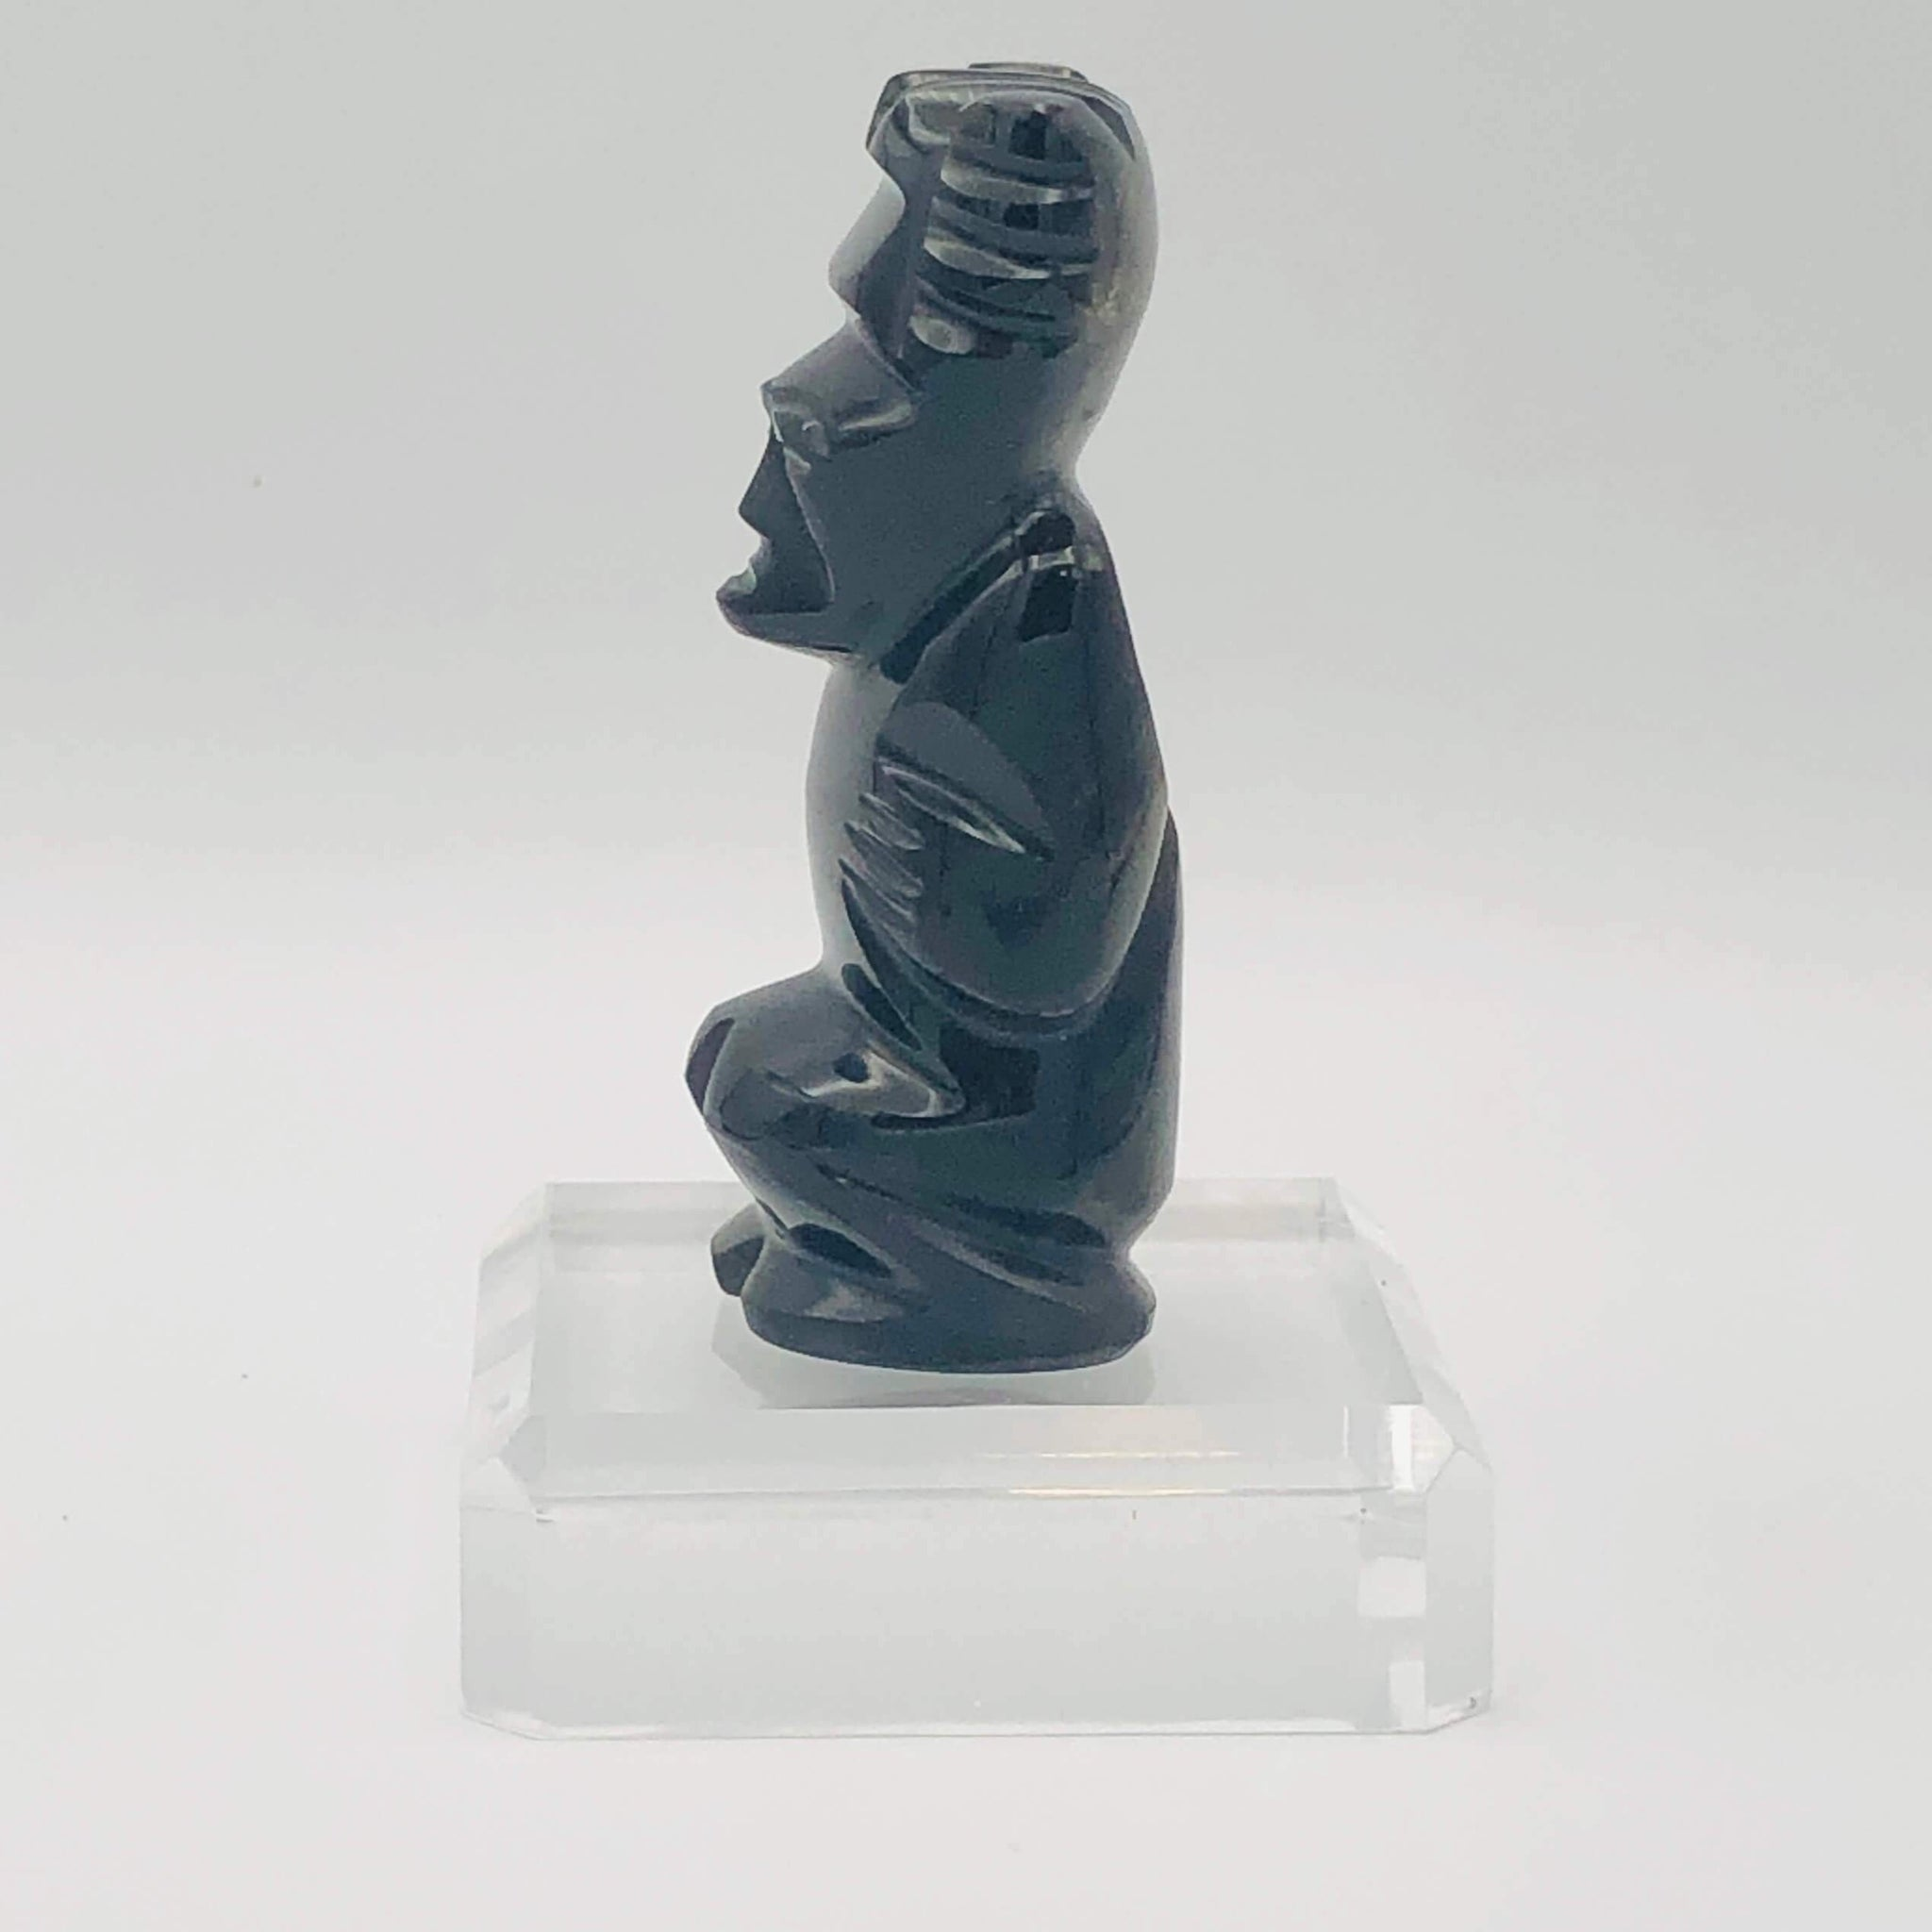 Black Onyx Figurine